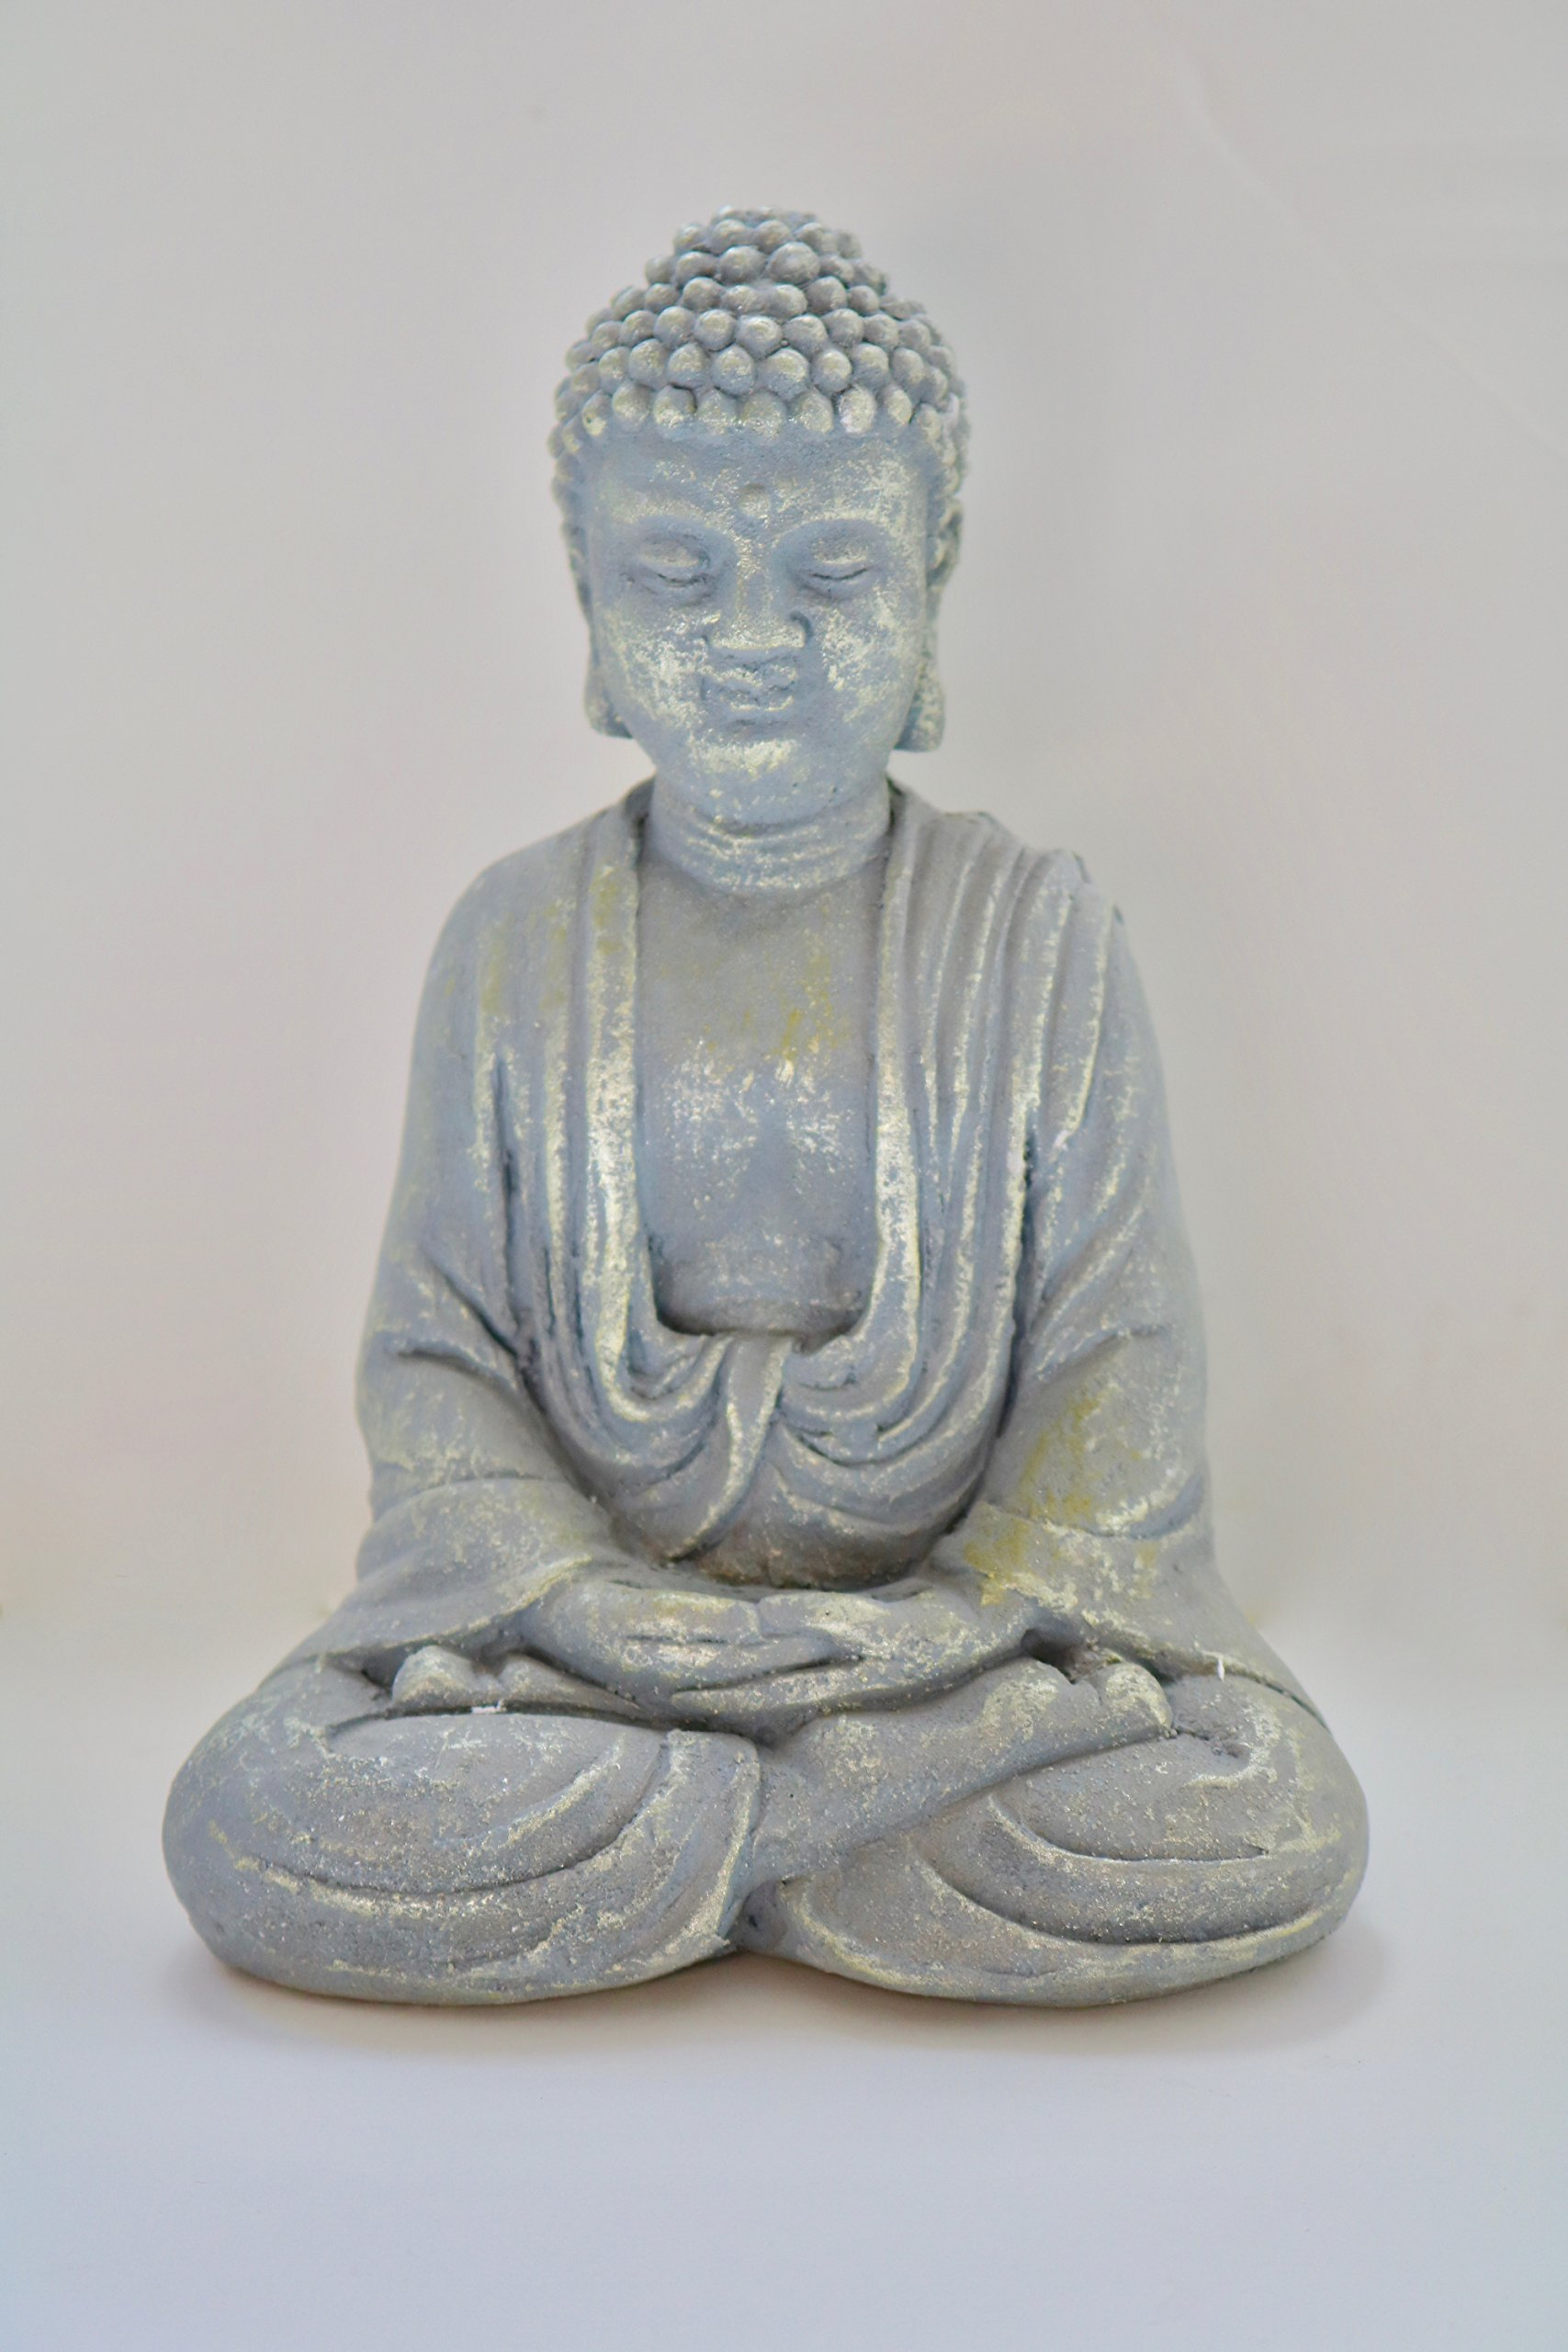 Bestrada USA Blessing Zen Meditating Seated Buddha Stature Indoor Home Decor 17cm High (Sand Stone)